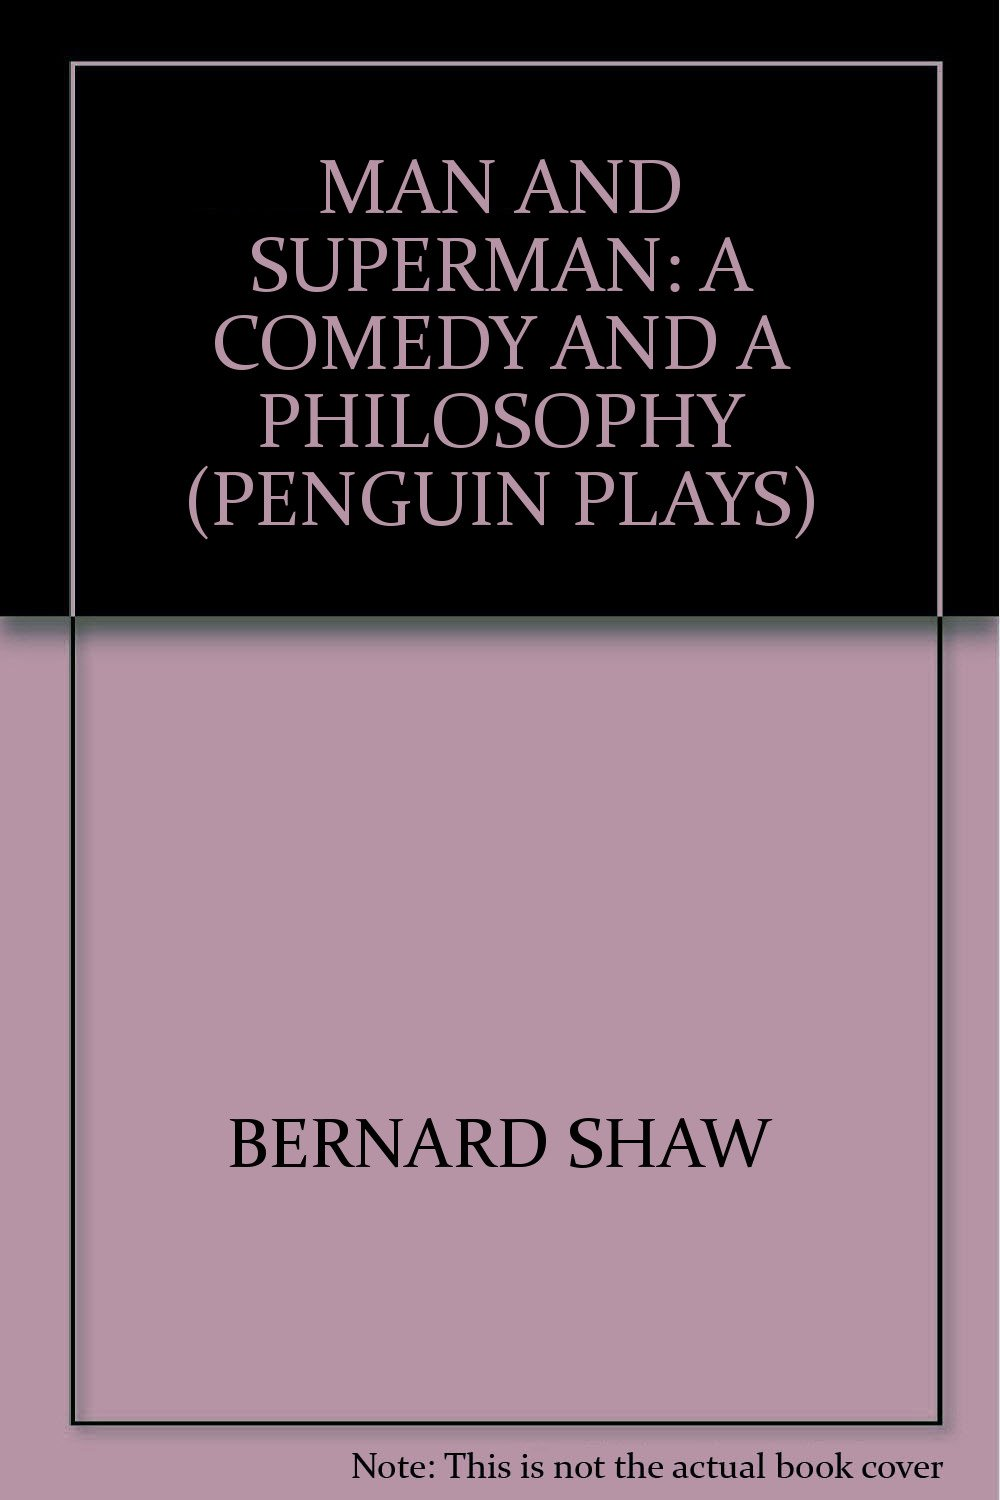 MAN AND SUPERMAN: A COMEDY AND A PHILOSOPHY (PENGUIN PLAYS)